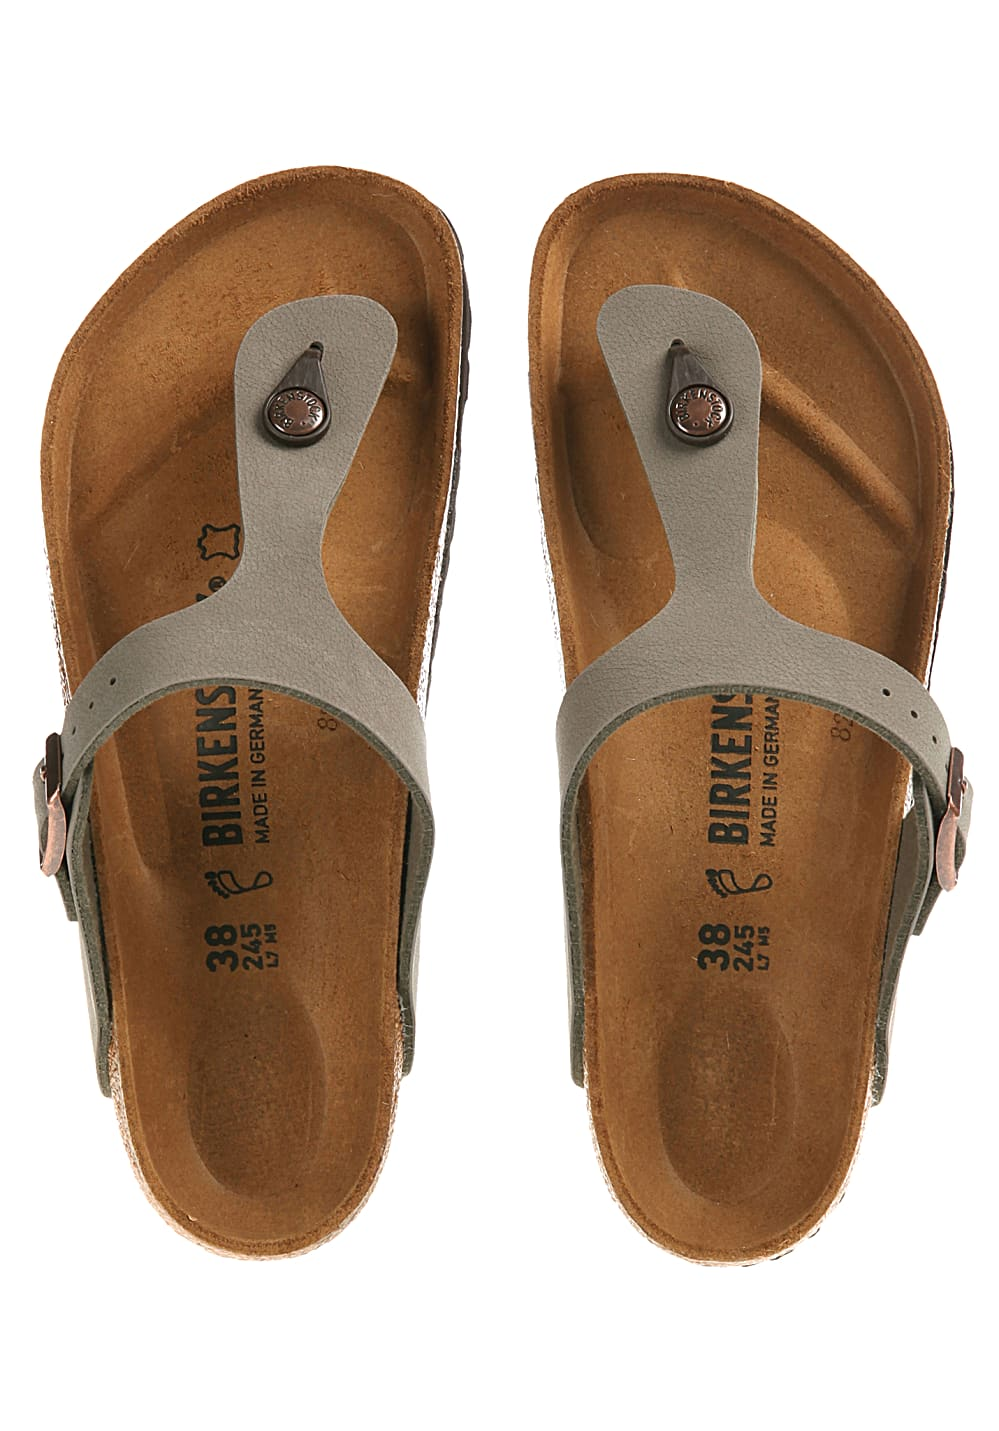 new product c9ea9 a86a1 Birkenstock Gizeh BF - Sandals for Women - Grey